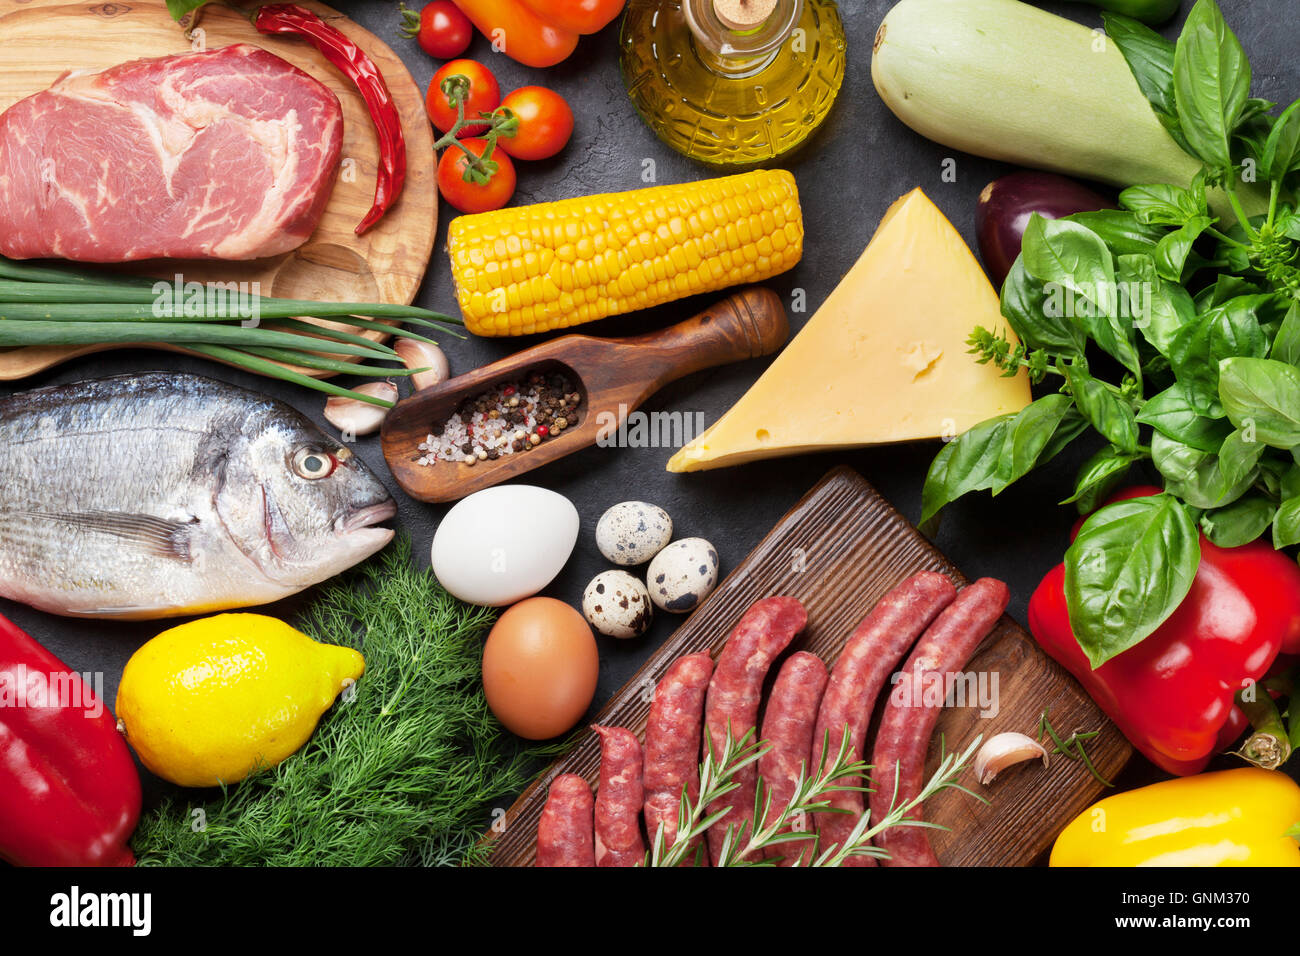 Food Protein Meat Fish Eggs Stock Photos & Food Protein Meat